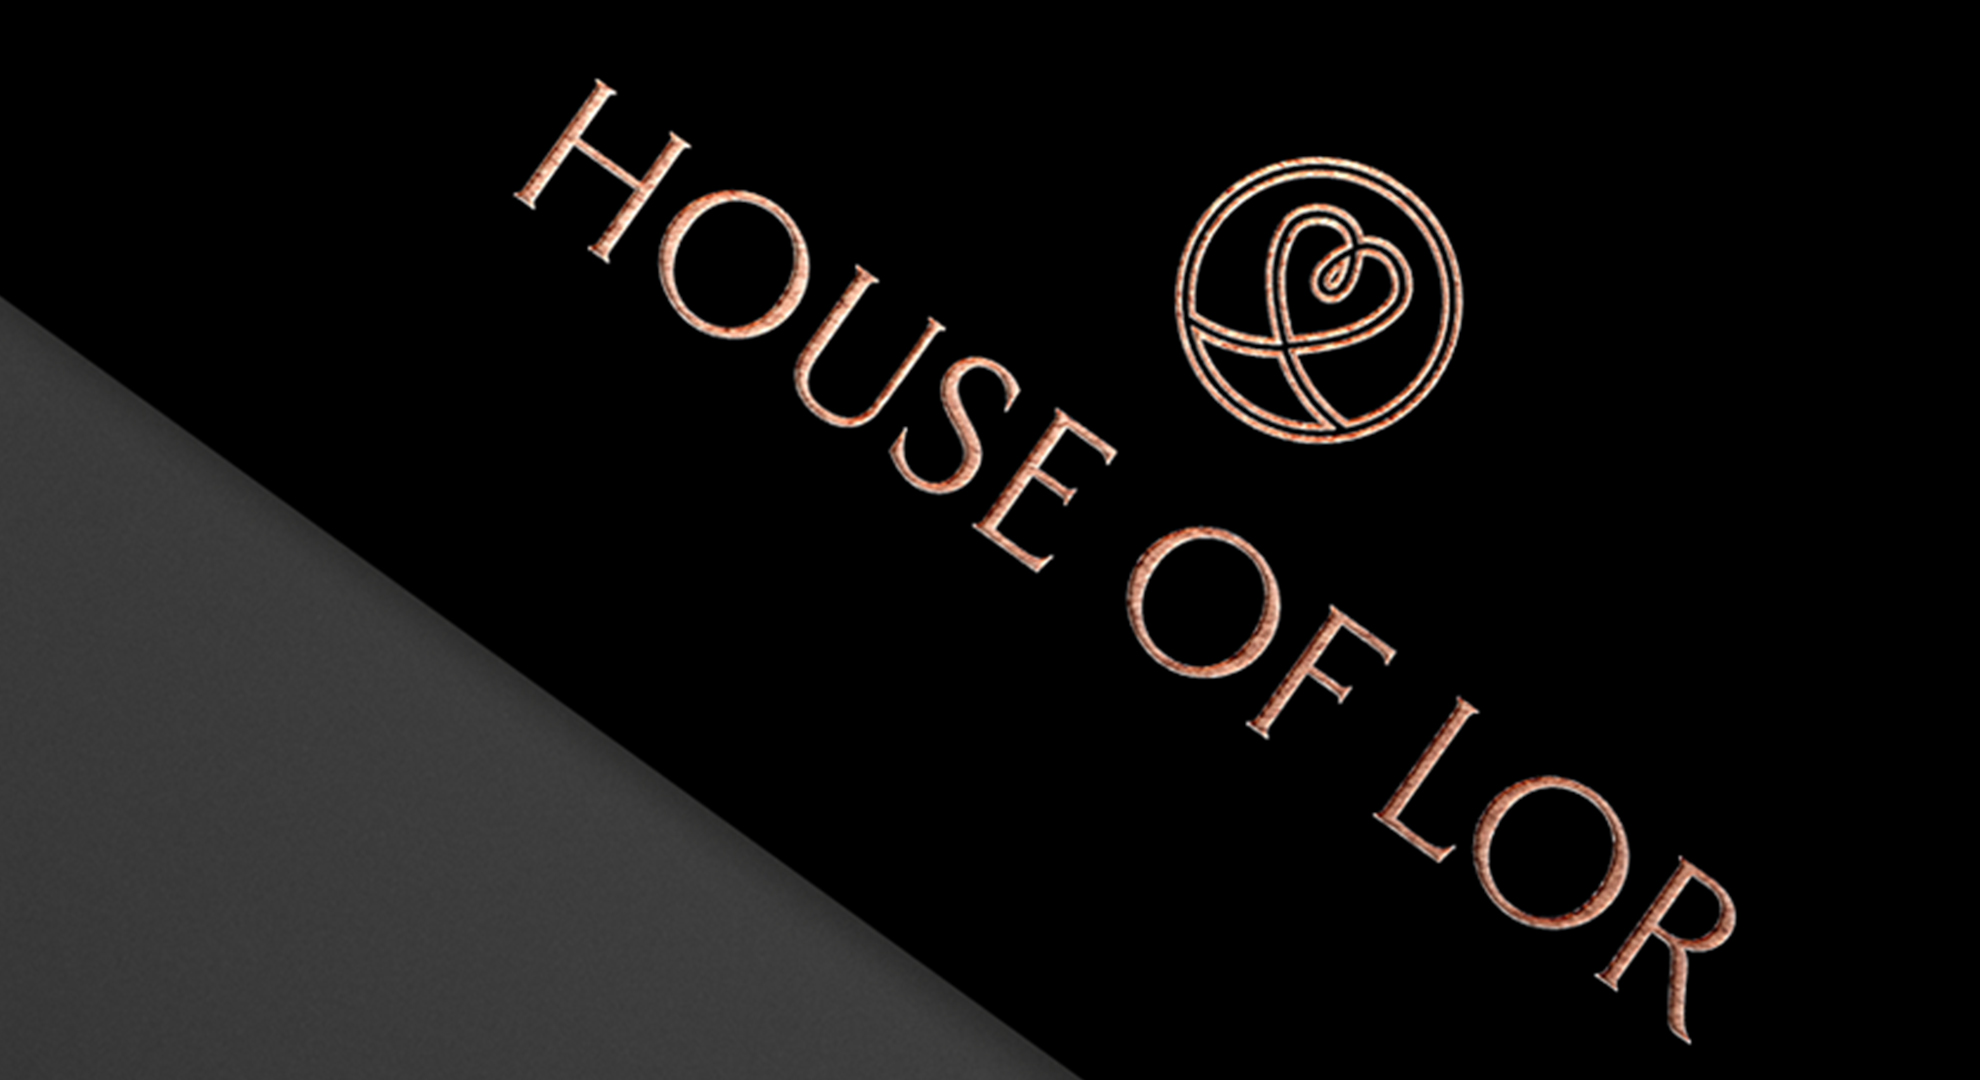 Cover image: House of Lor